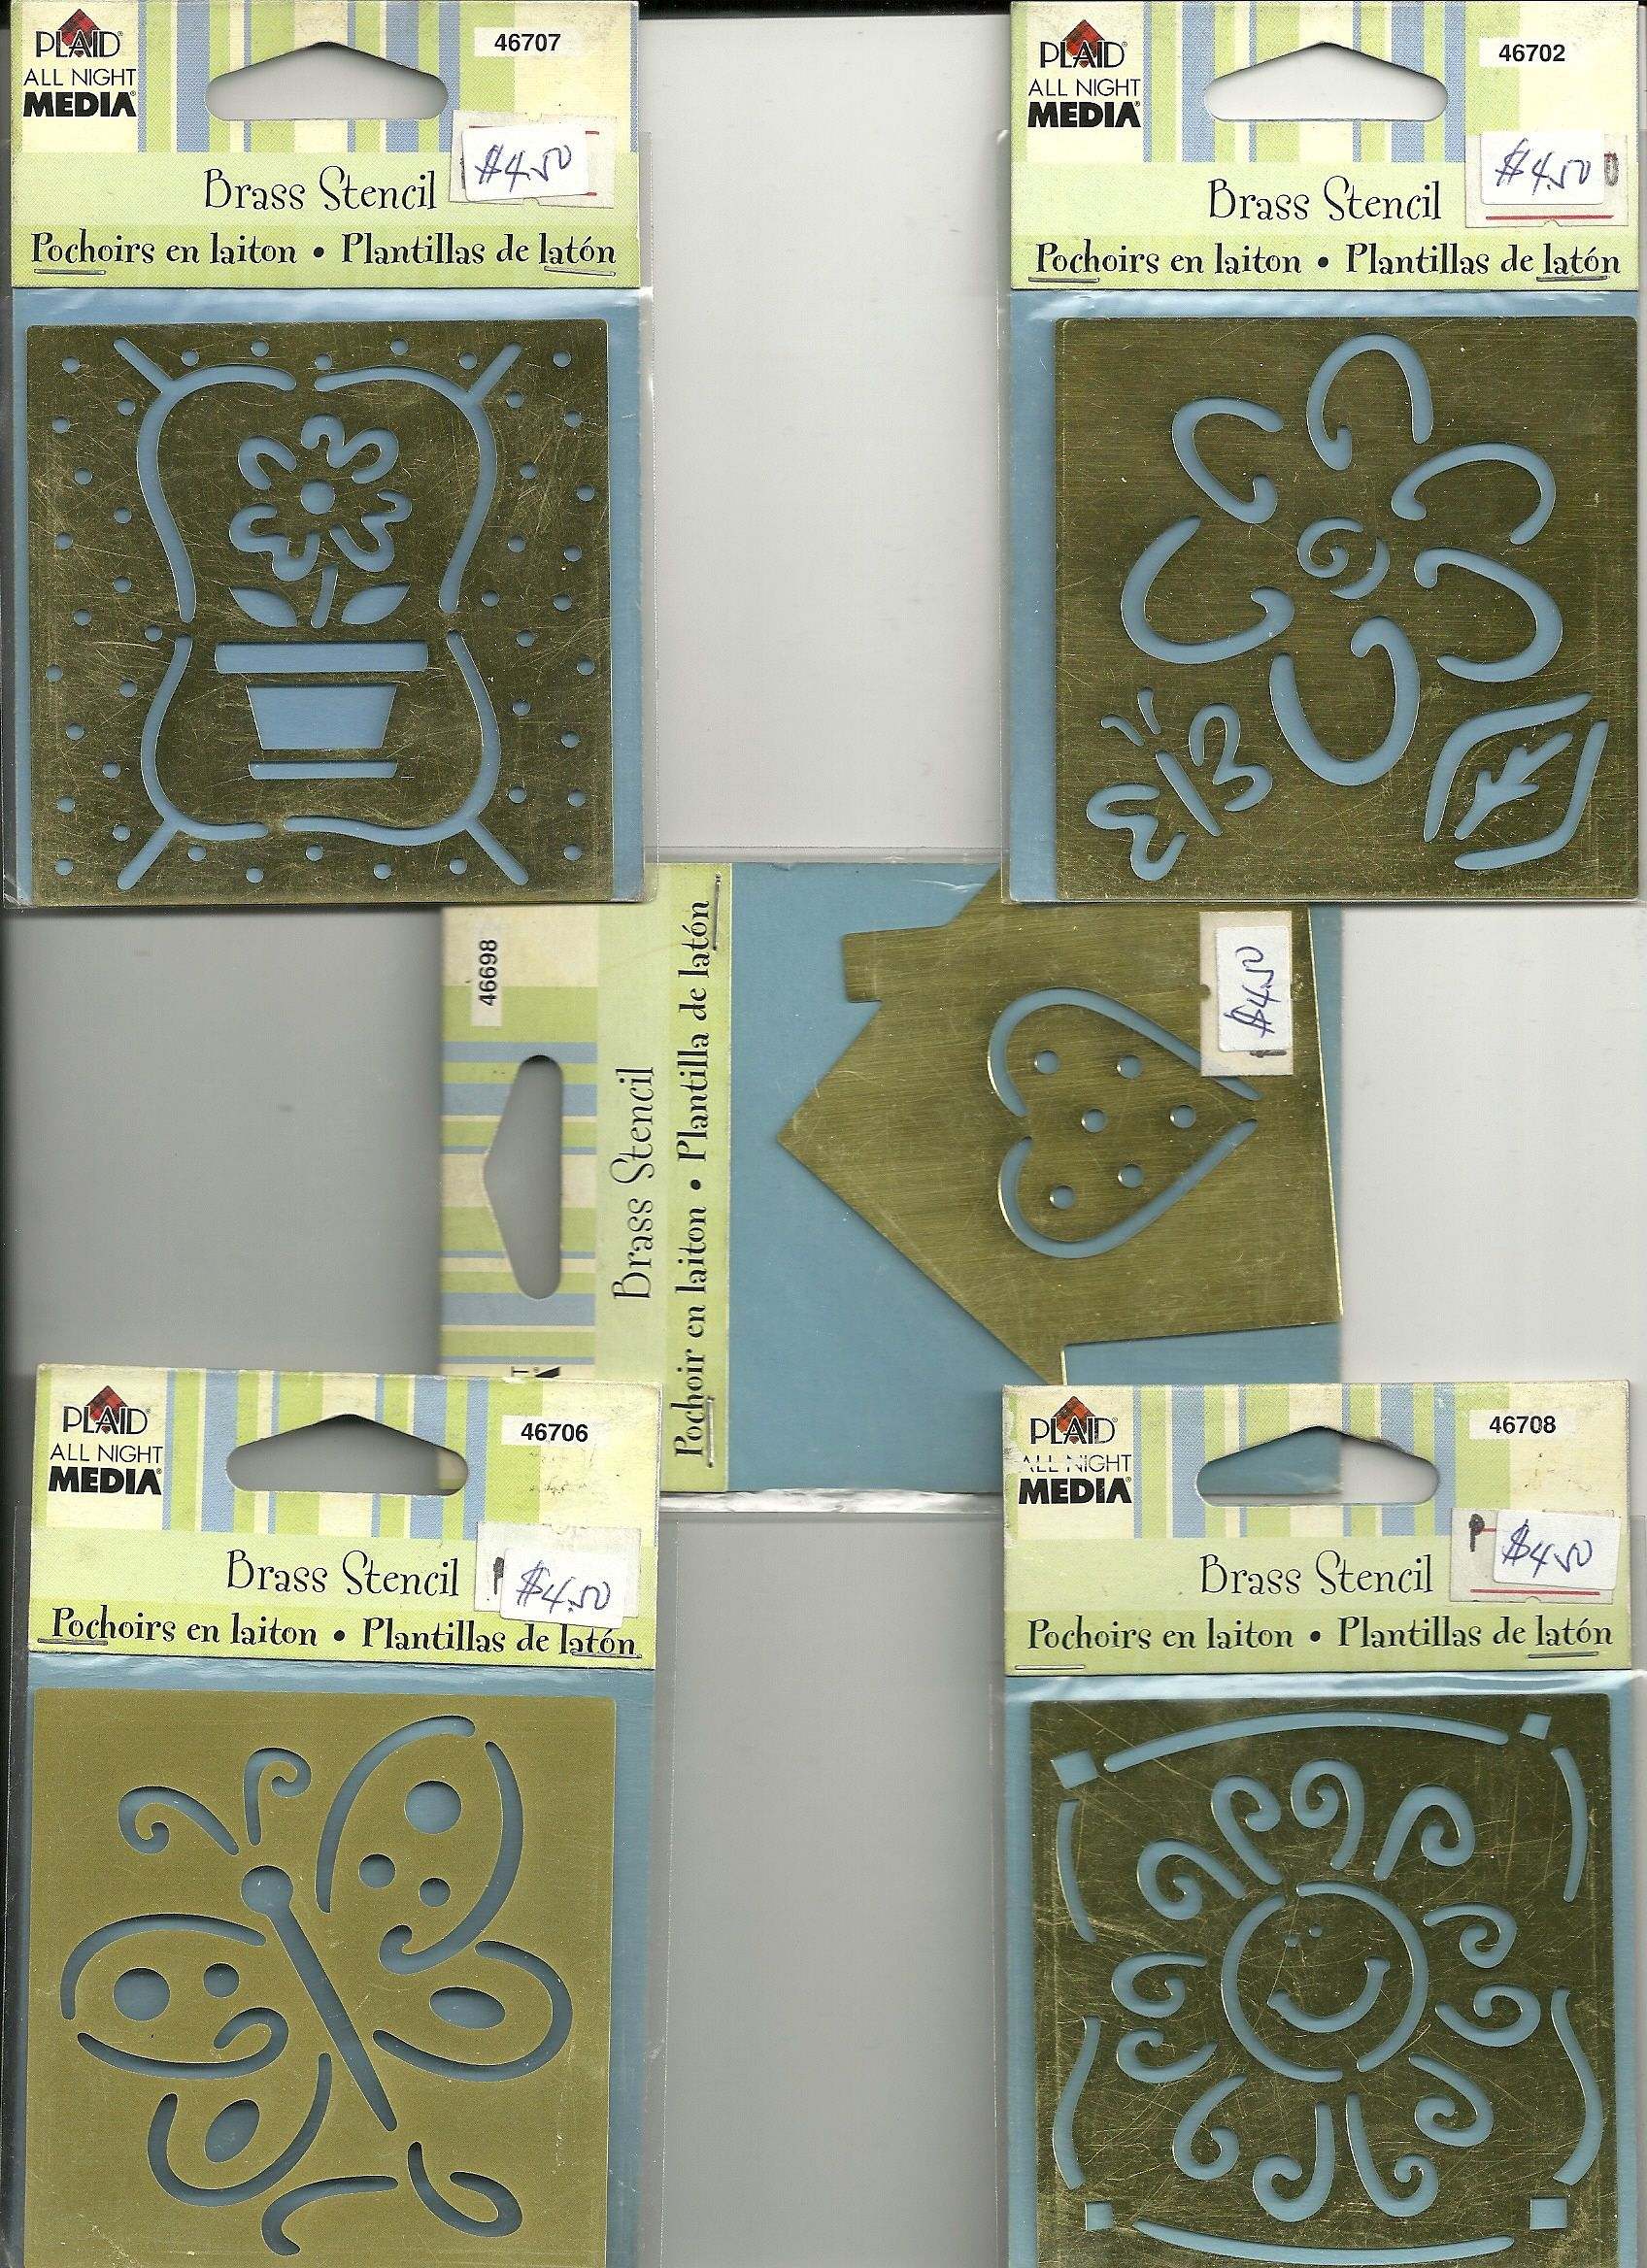 Pin by Crafts Galore on Craft Templates/Tools for Sale | Pinterest ...